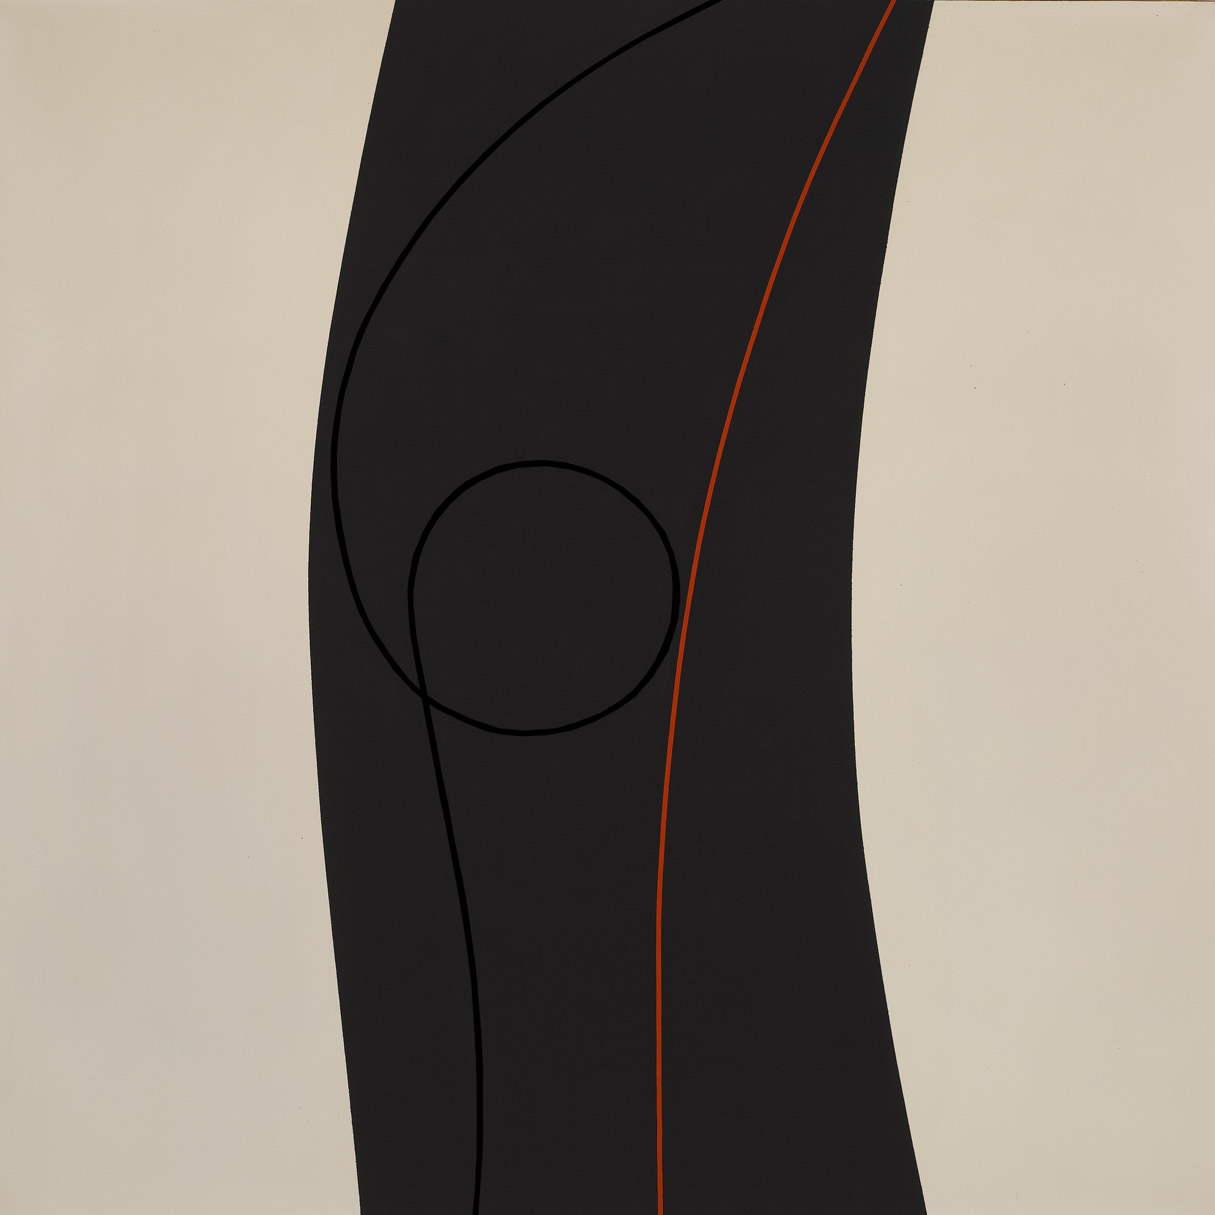 Untitled , 1964  oil and enamel on canvas 60 x 60 inches; 152.4 x 152.4 centimeters